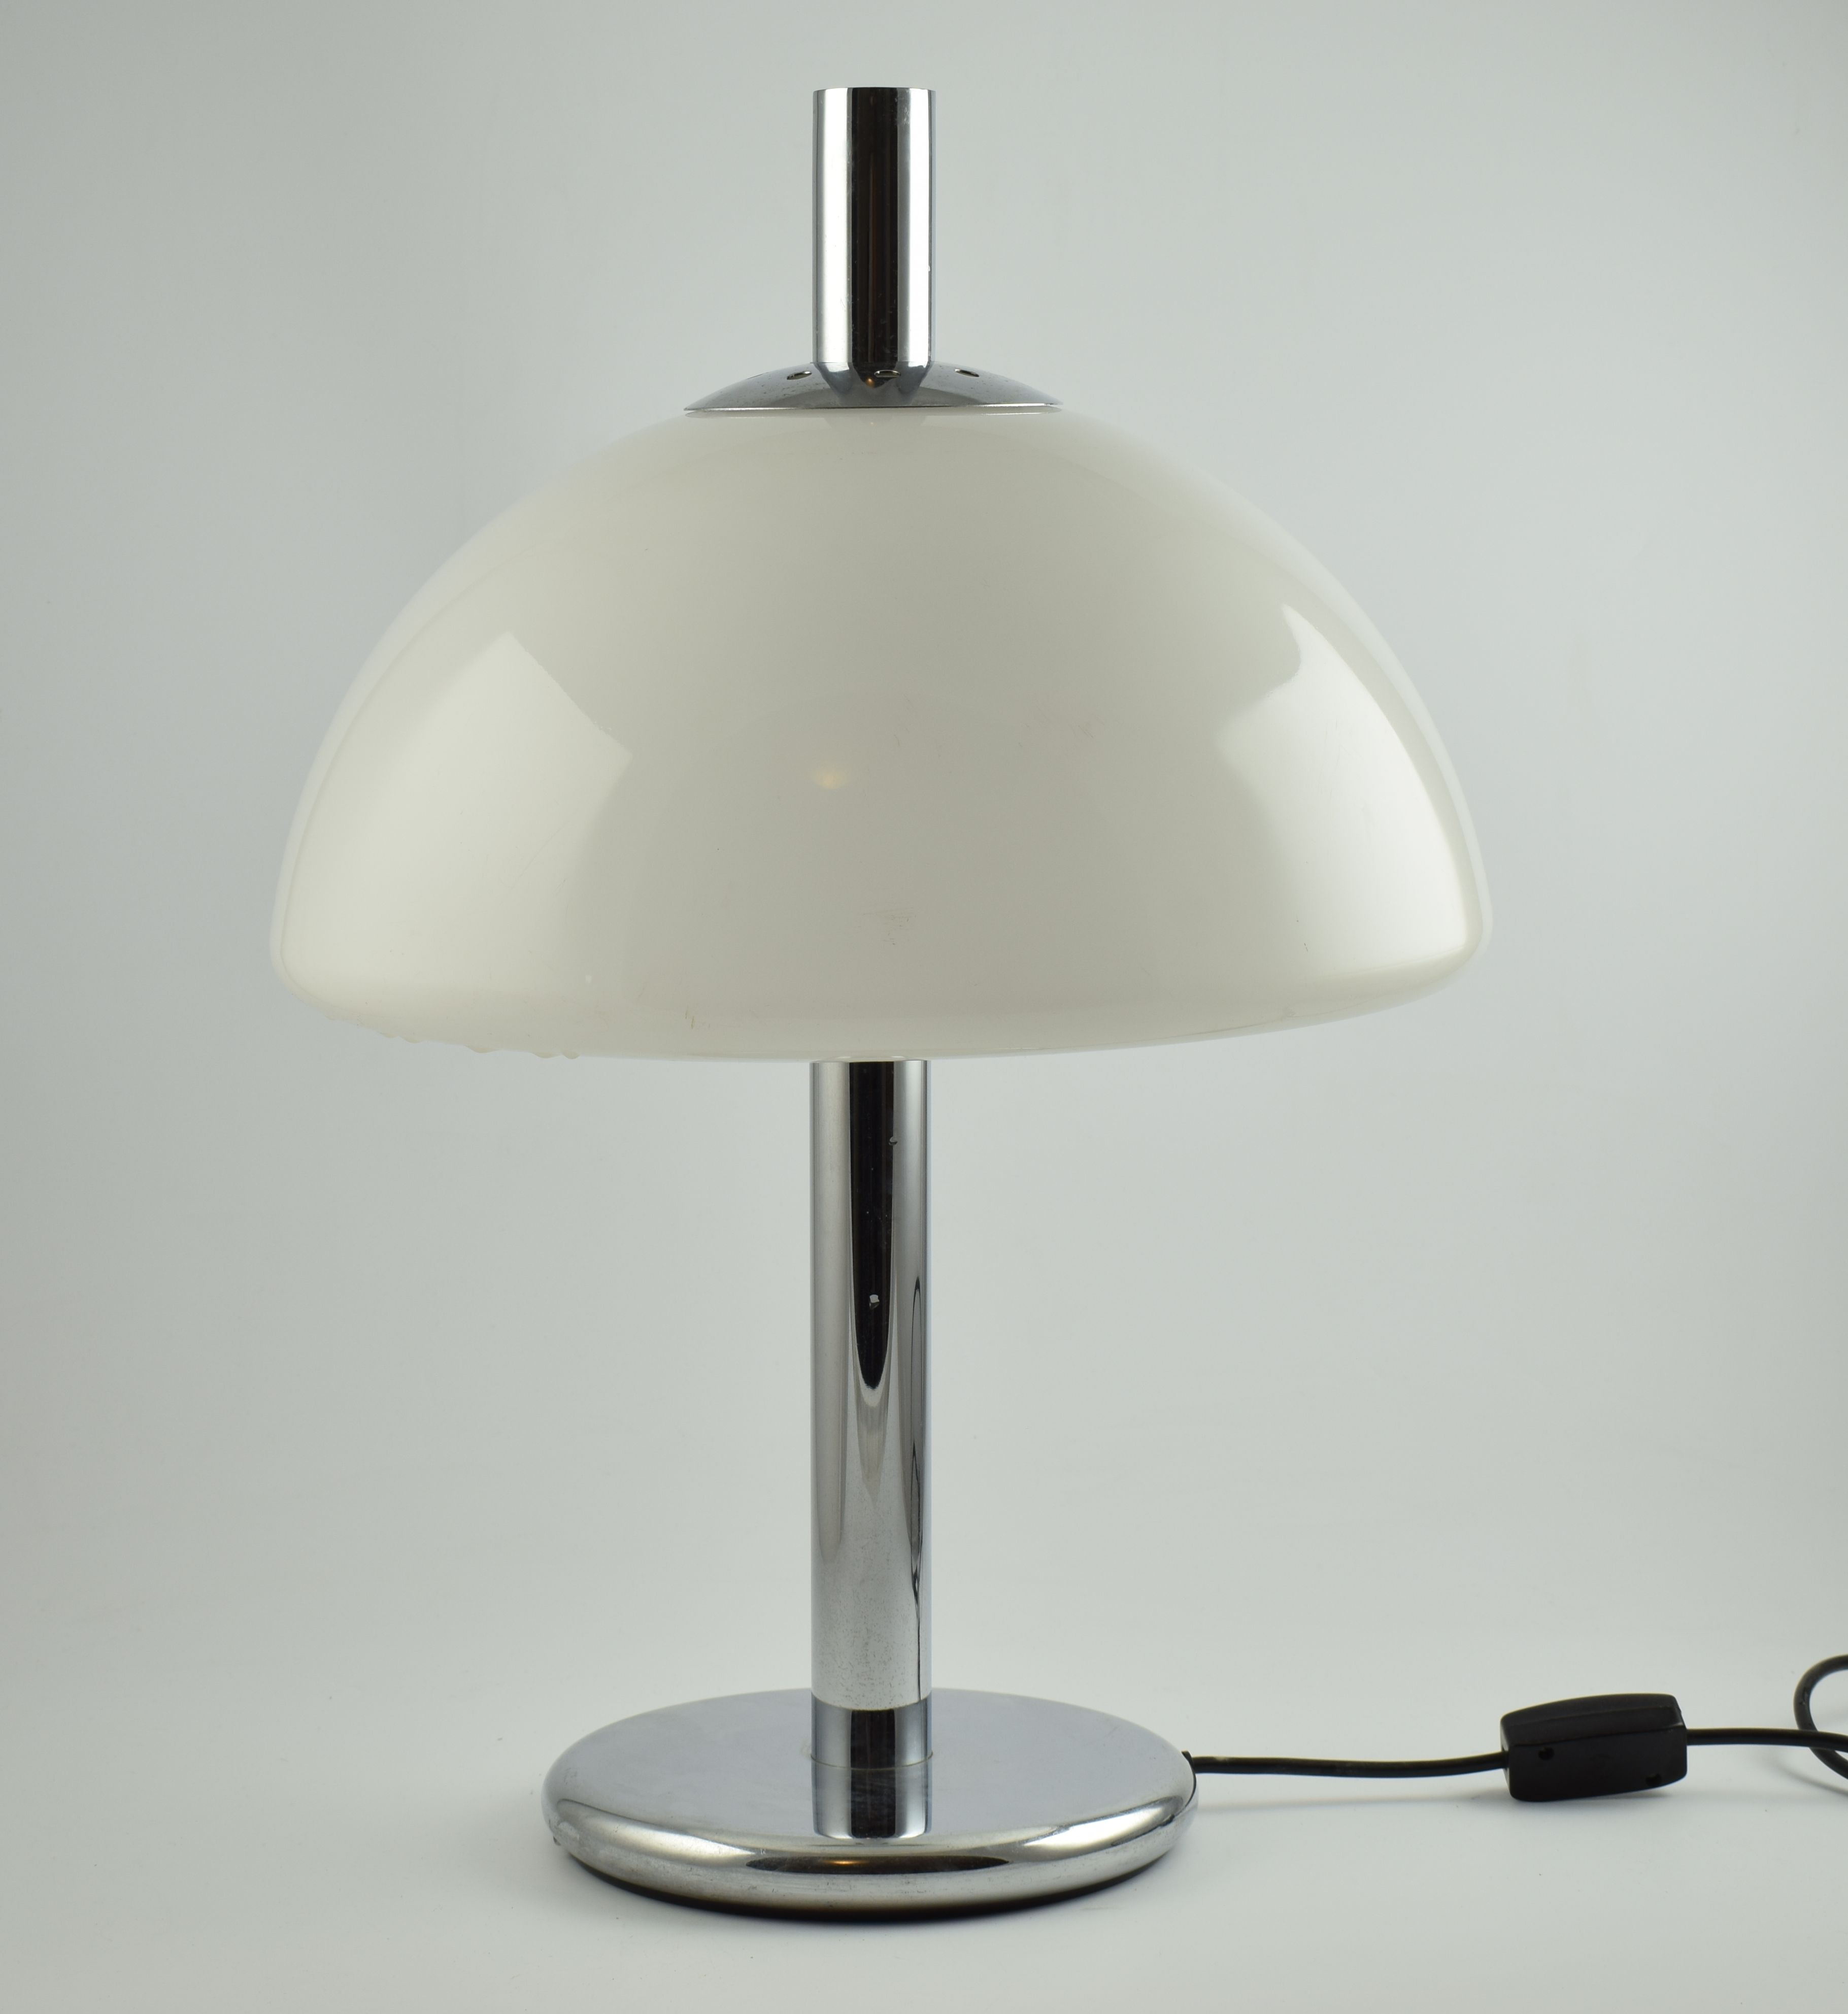 Guzzini Table Lamp